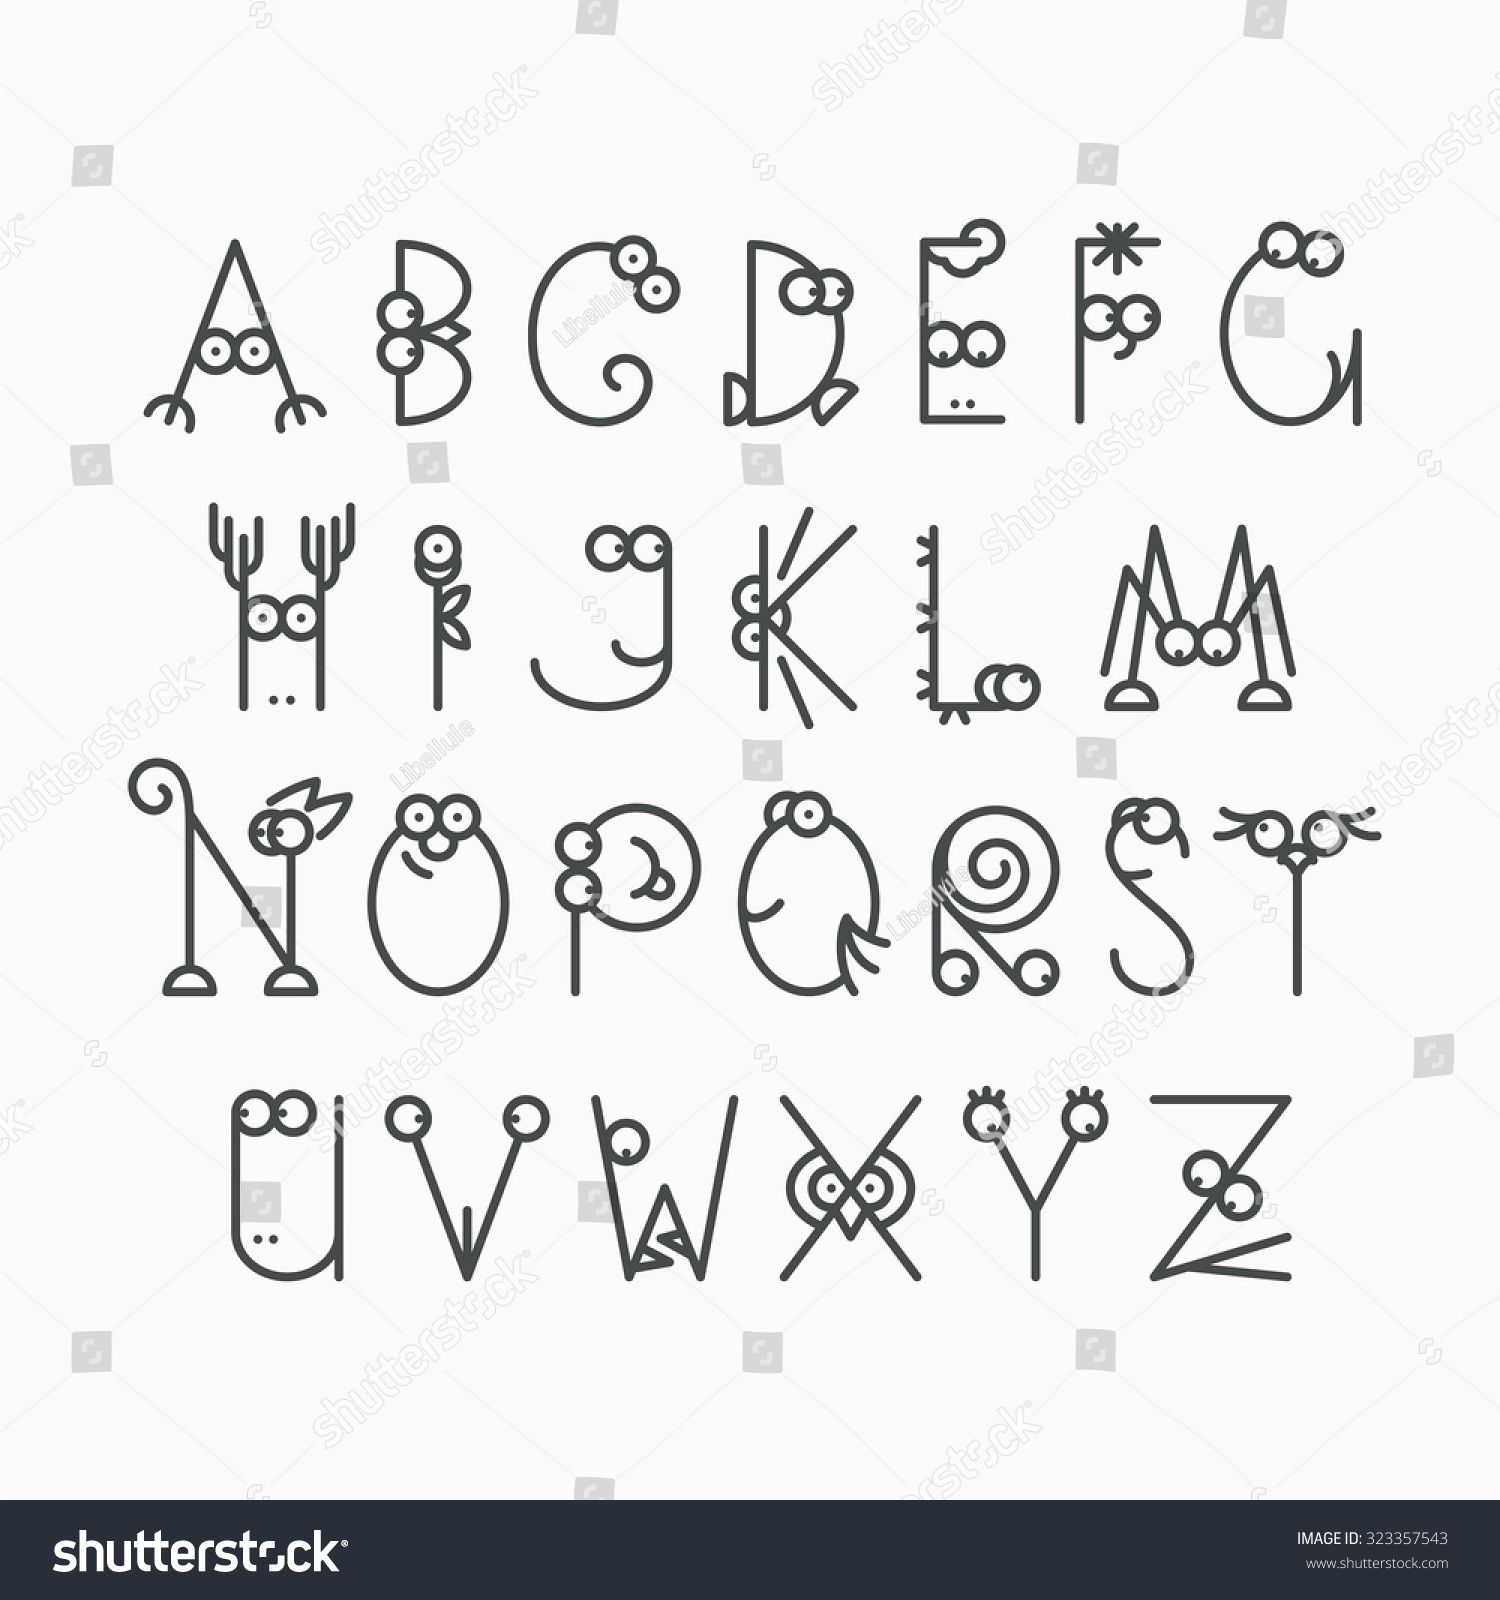 Cute Line Latin Alphabet Isolated Outline Empty Letters For Kids Design